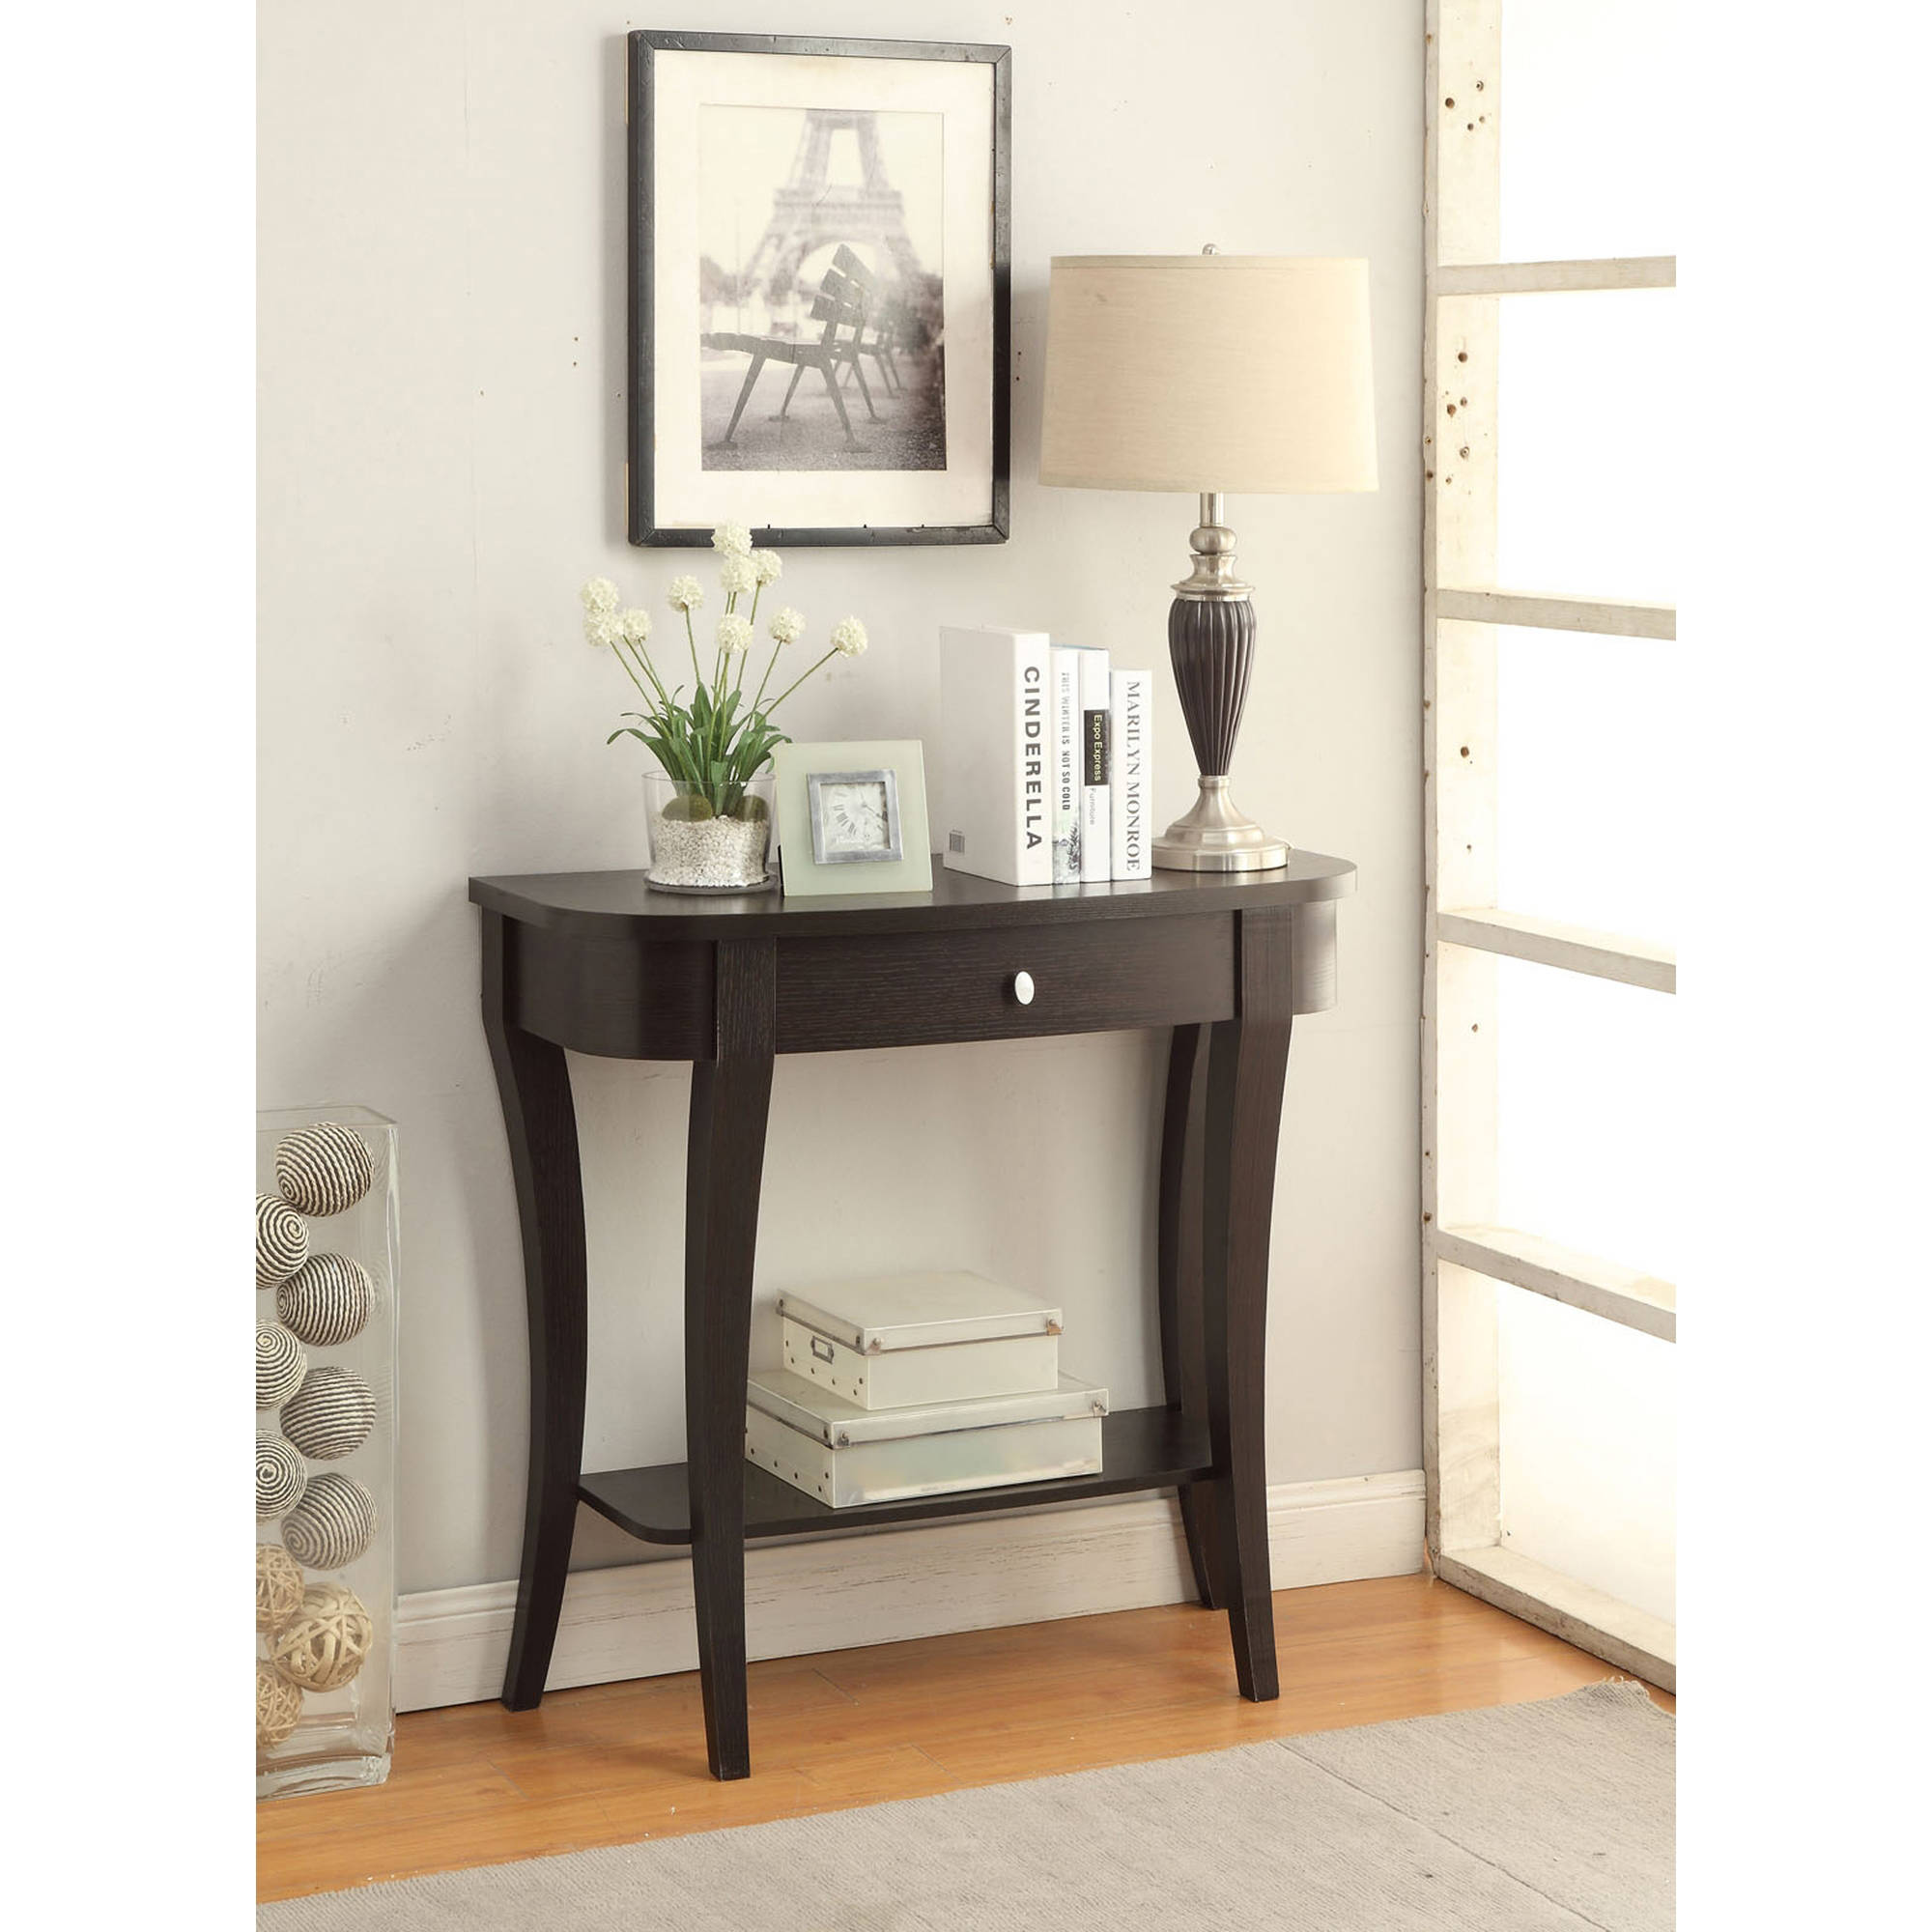 Foyer Console Table entryway console table concepts newport with design decorating